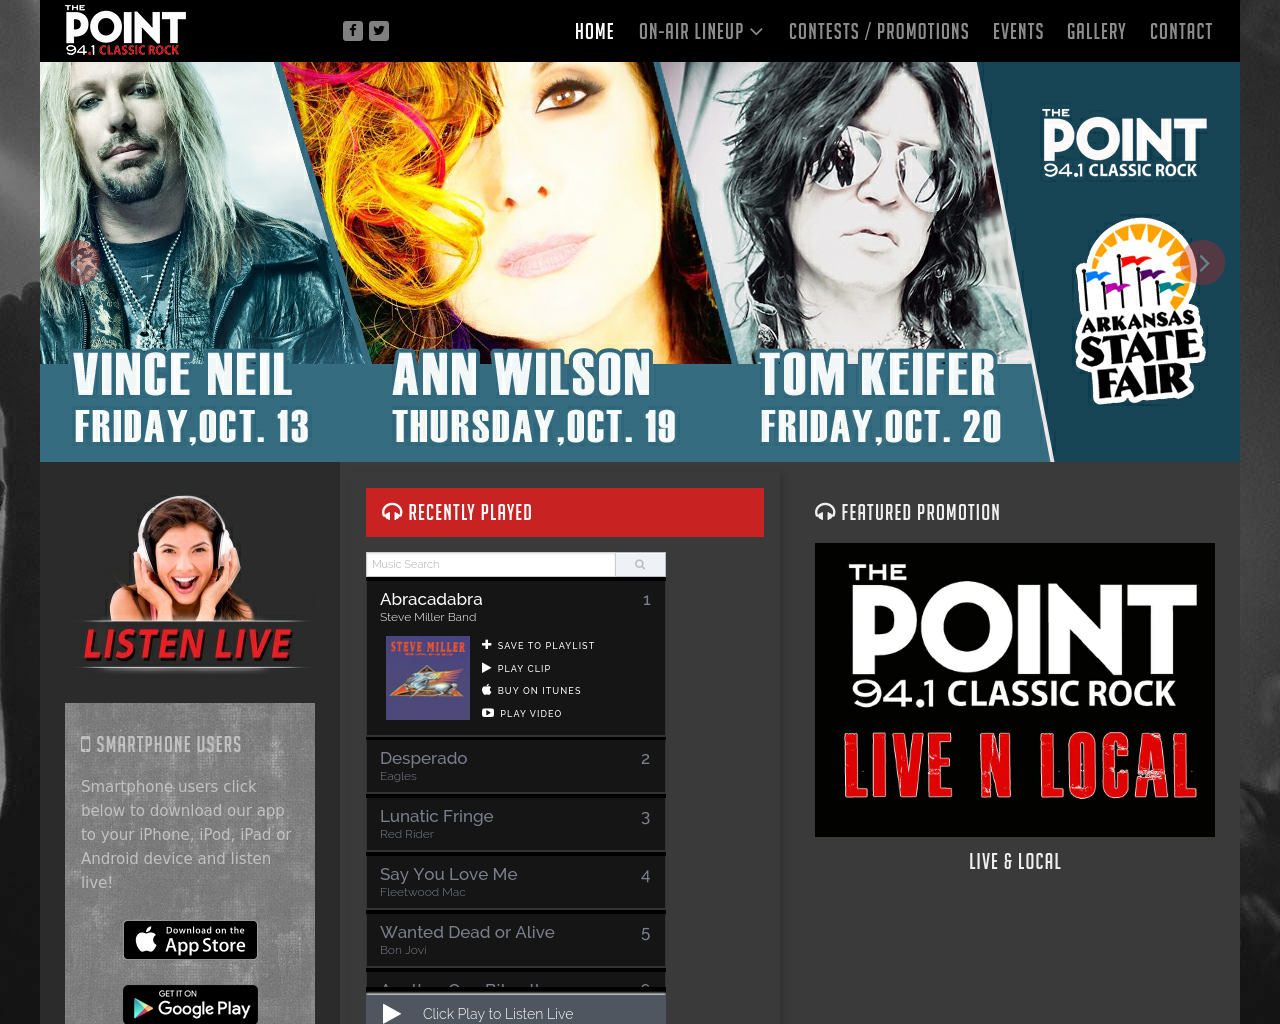 The-Point-94.1-FM-Classic-Rock-Advertising-Reviews-Pricing